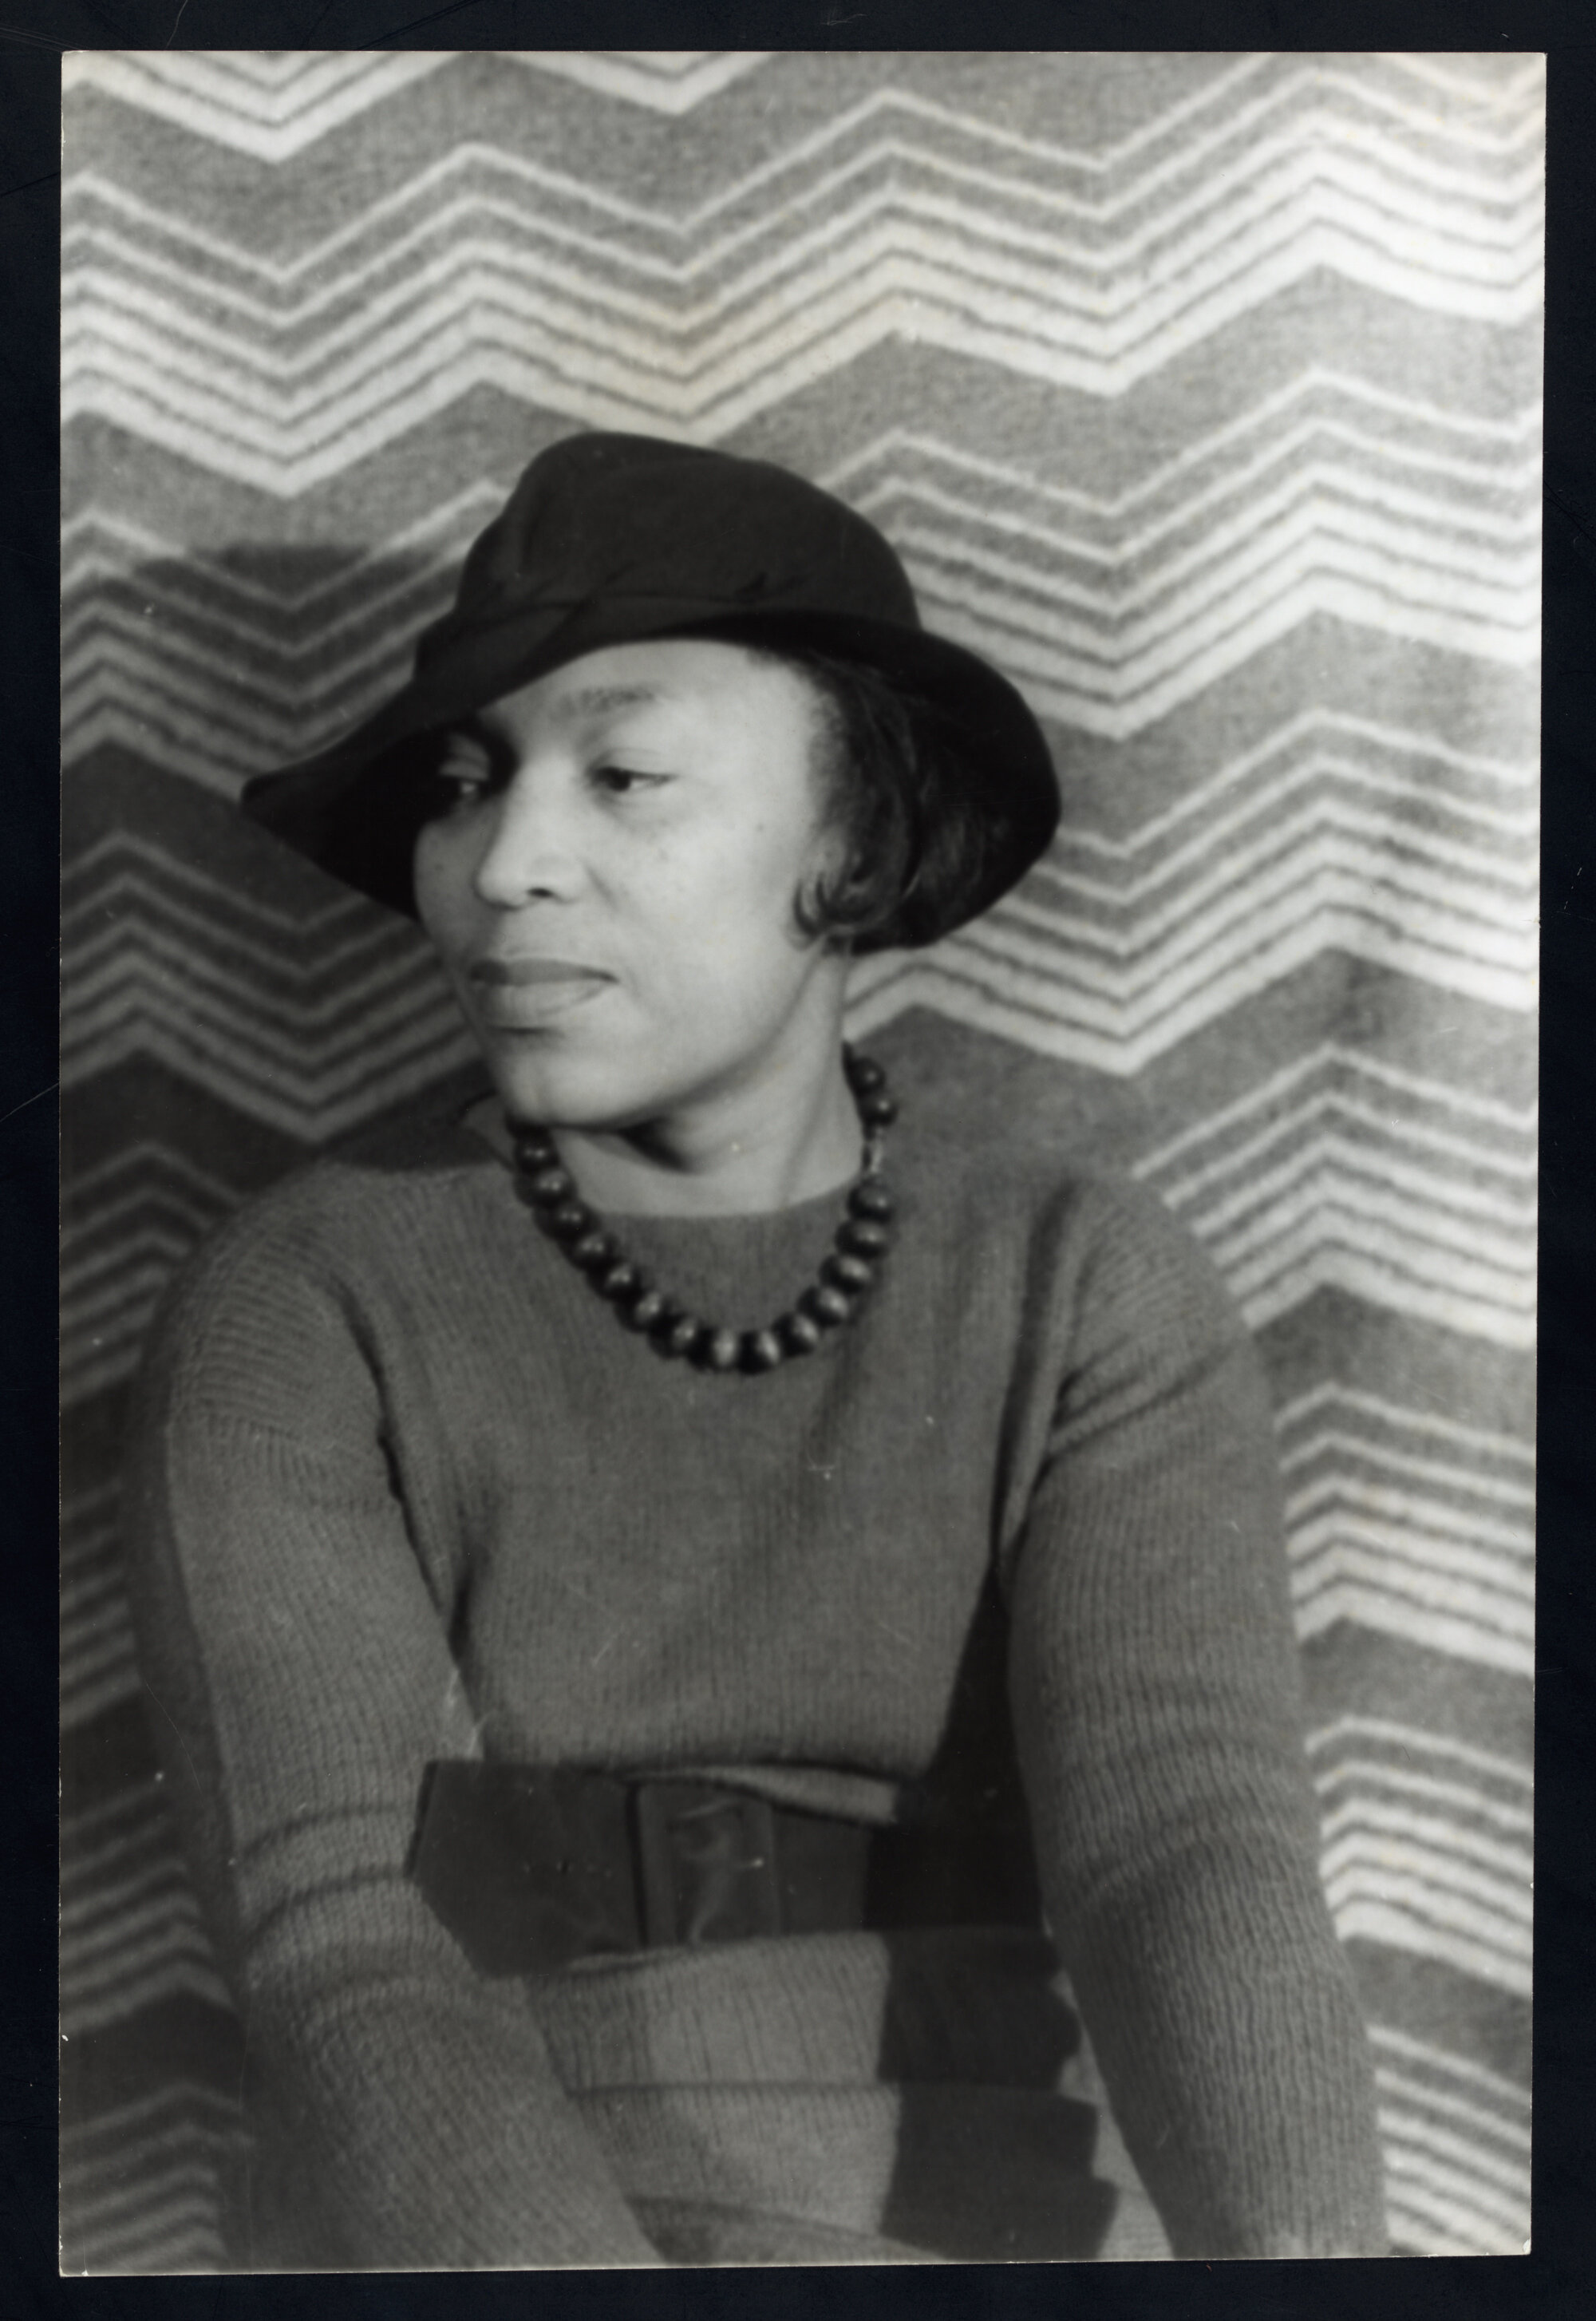 Portrait of Zora Neale Hurston by Carl Van Vechten in 1938, Courtesy of the University of Florida